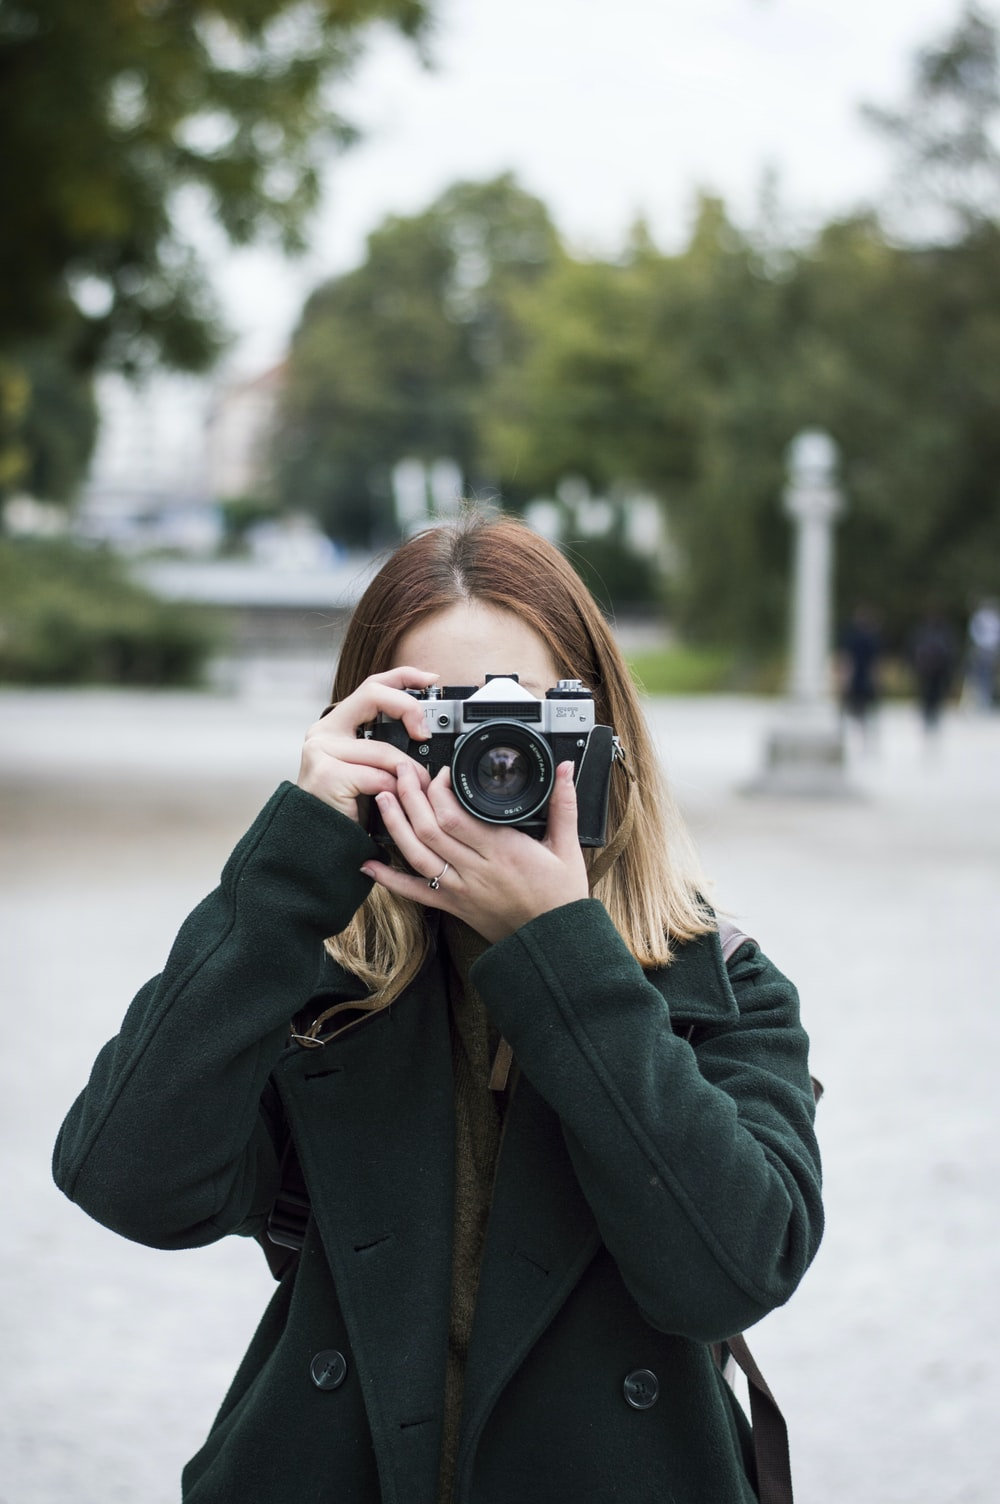 woman using SLR camera near trees during day